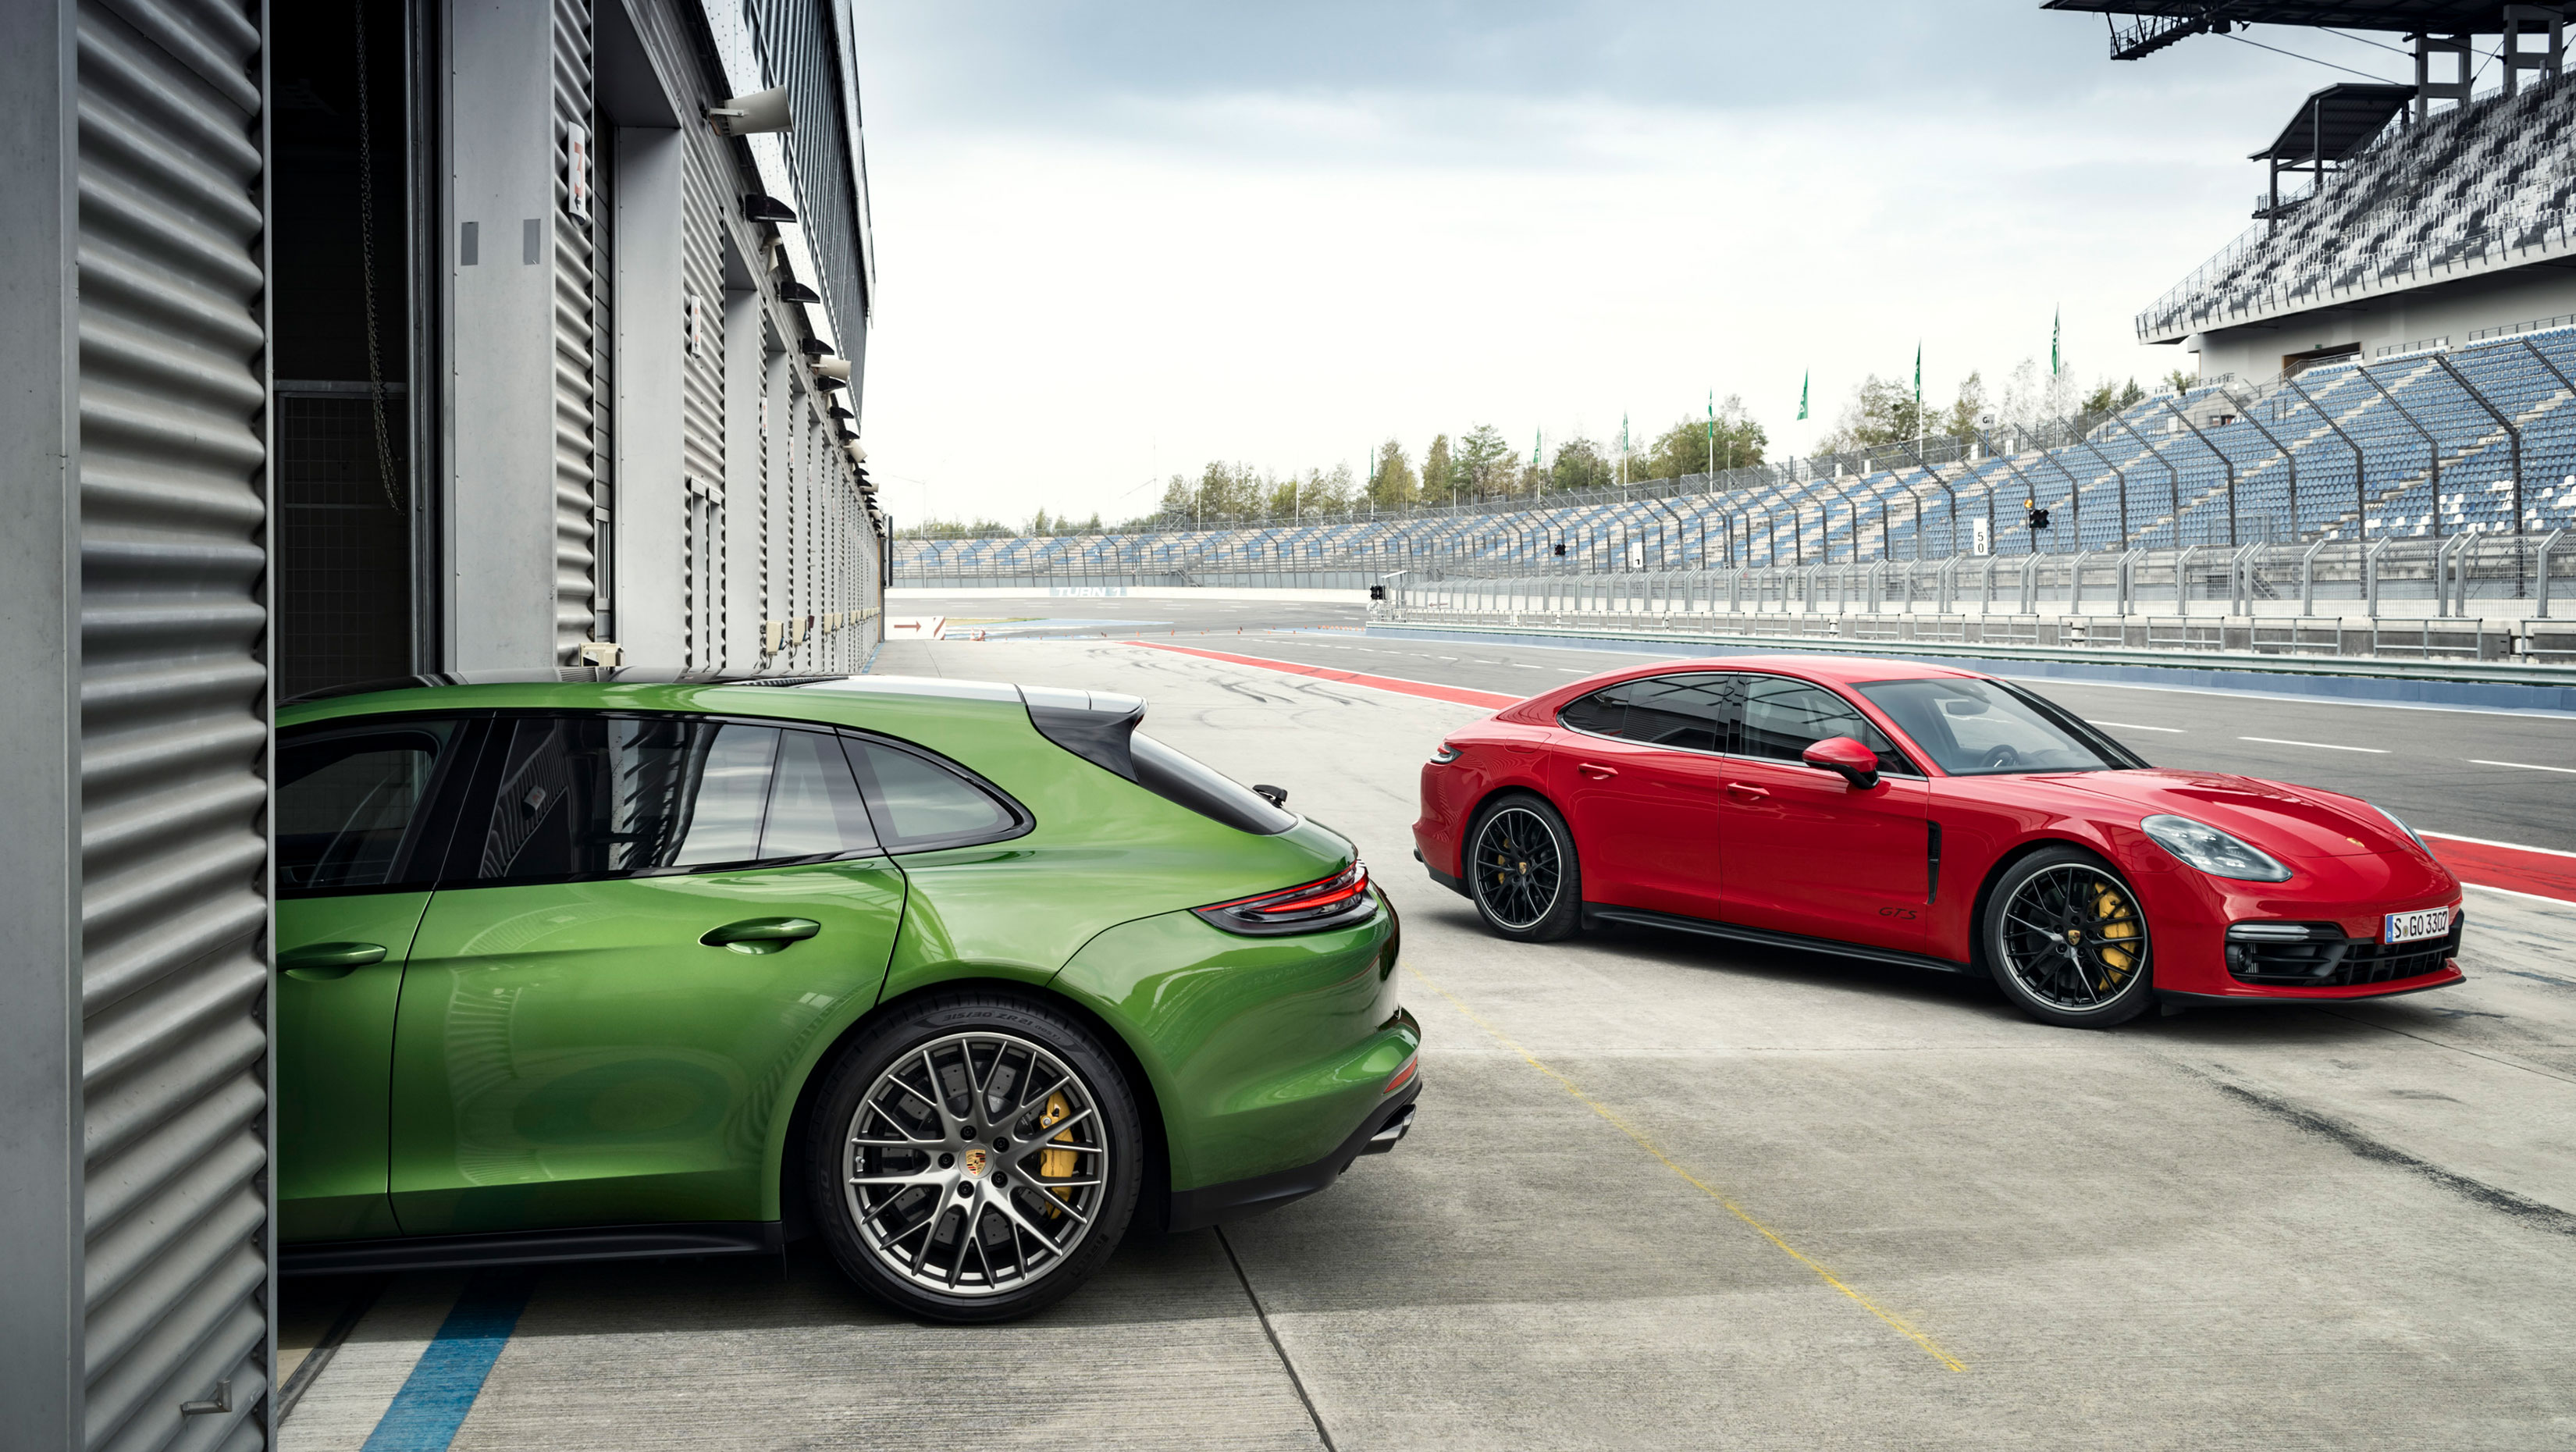 Porsche Panamera Gets New GTS Models With Head-Up Display and More Power